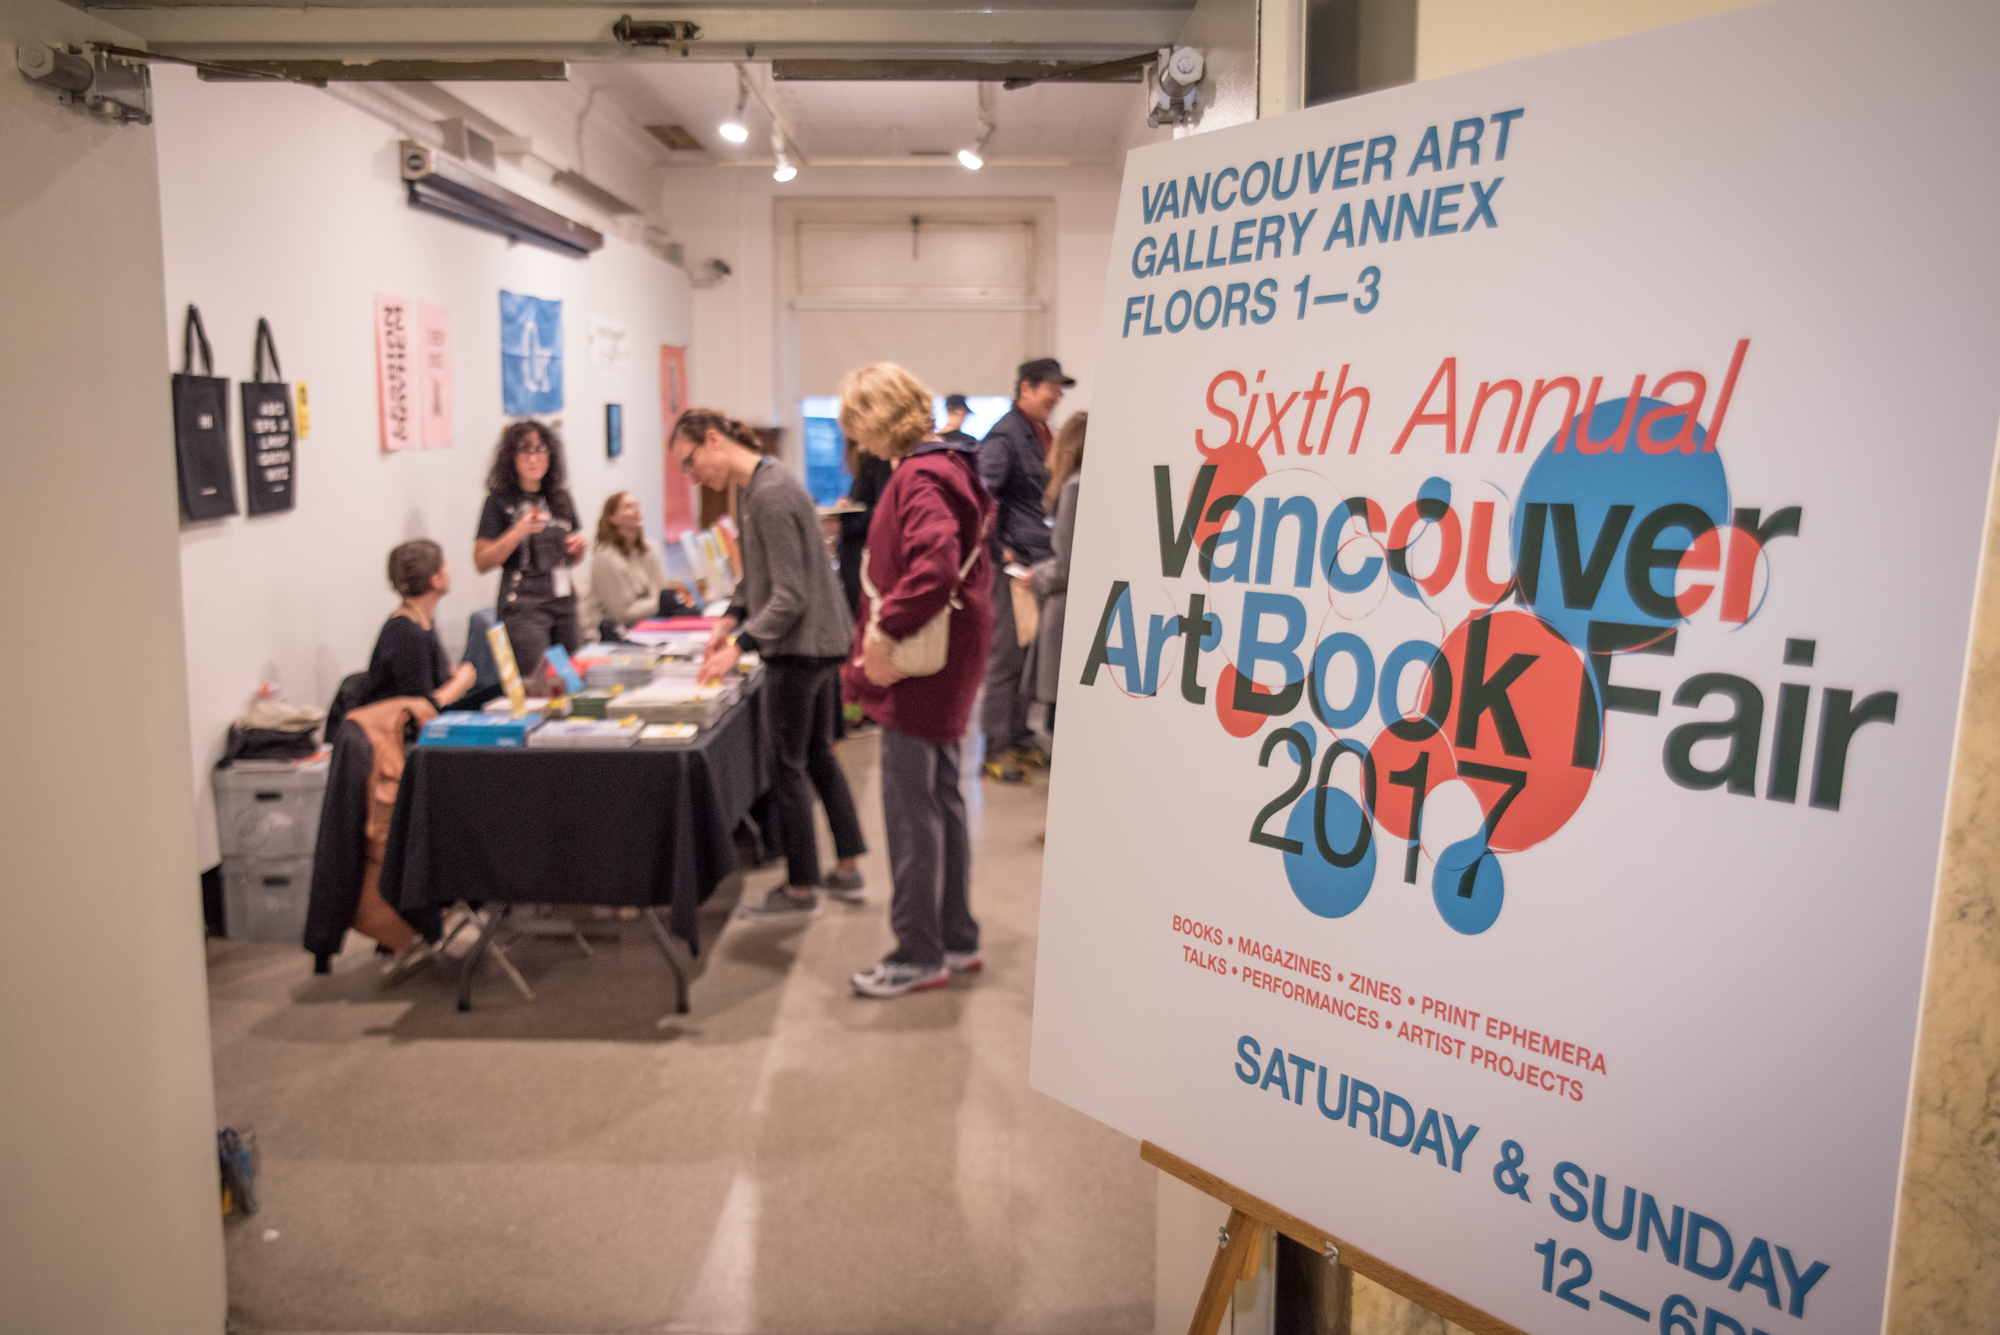 Vancouver Art Book Fair 2017. Photo by Rennie Brown